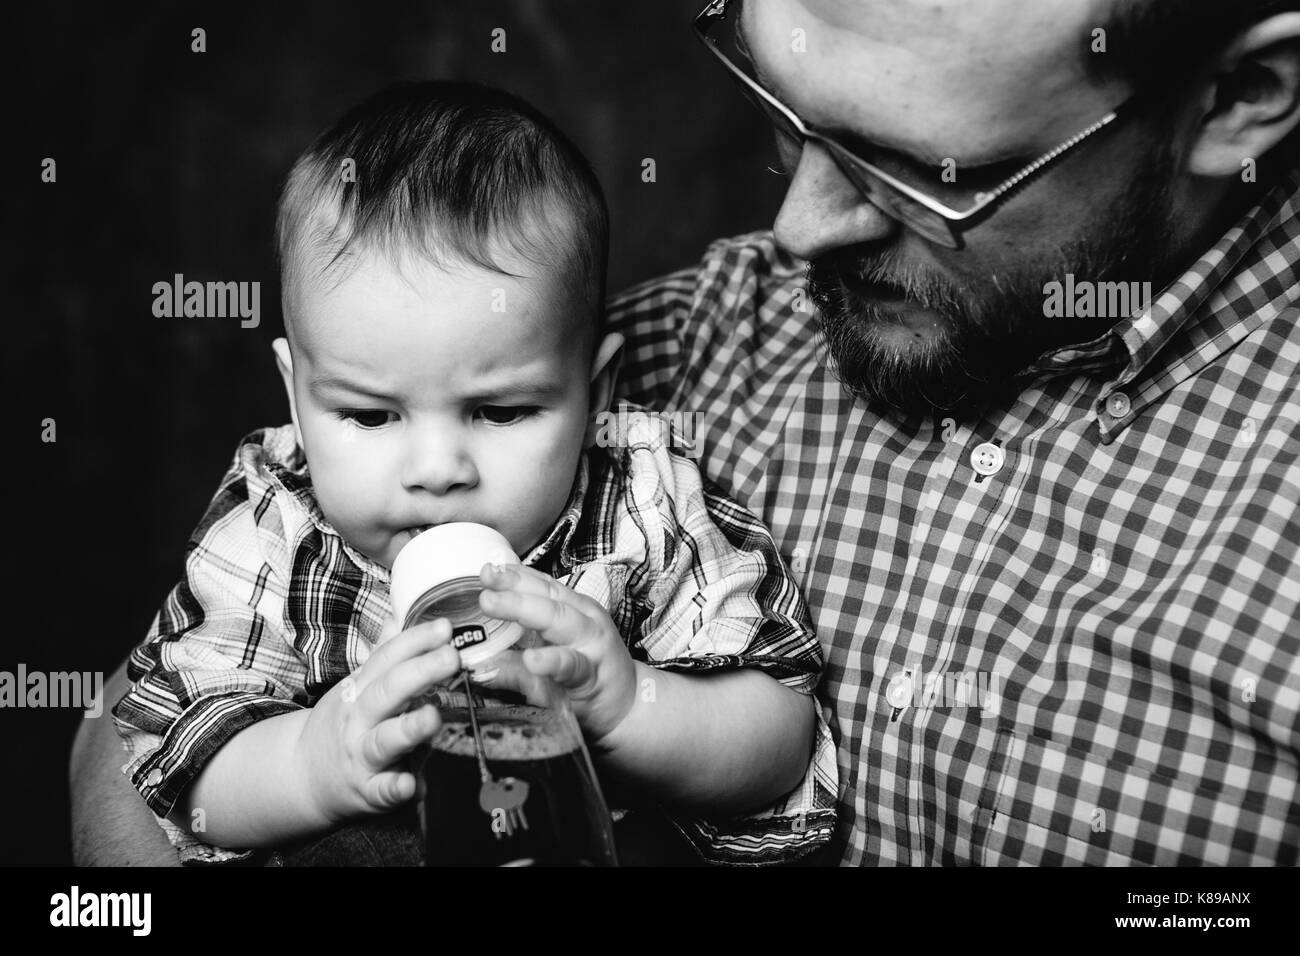 balck and white family portait father and baby boy - Stock Image